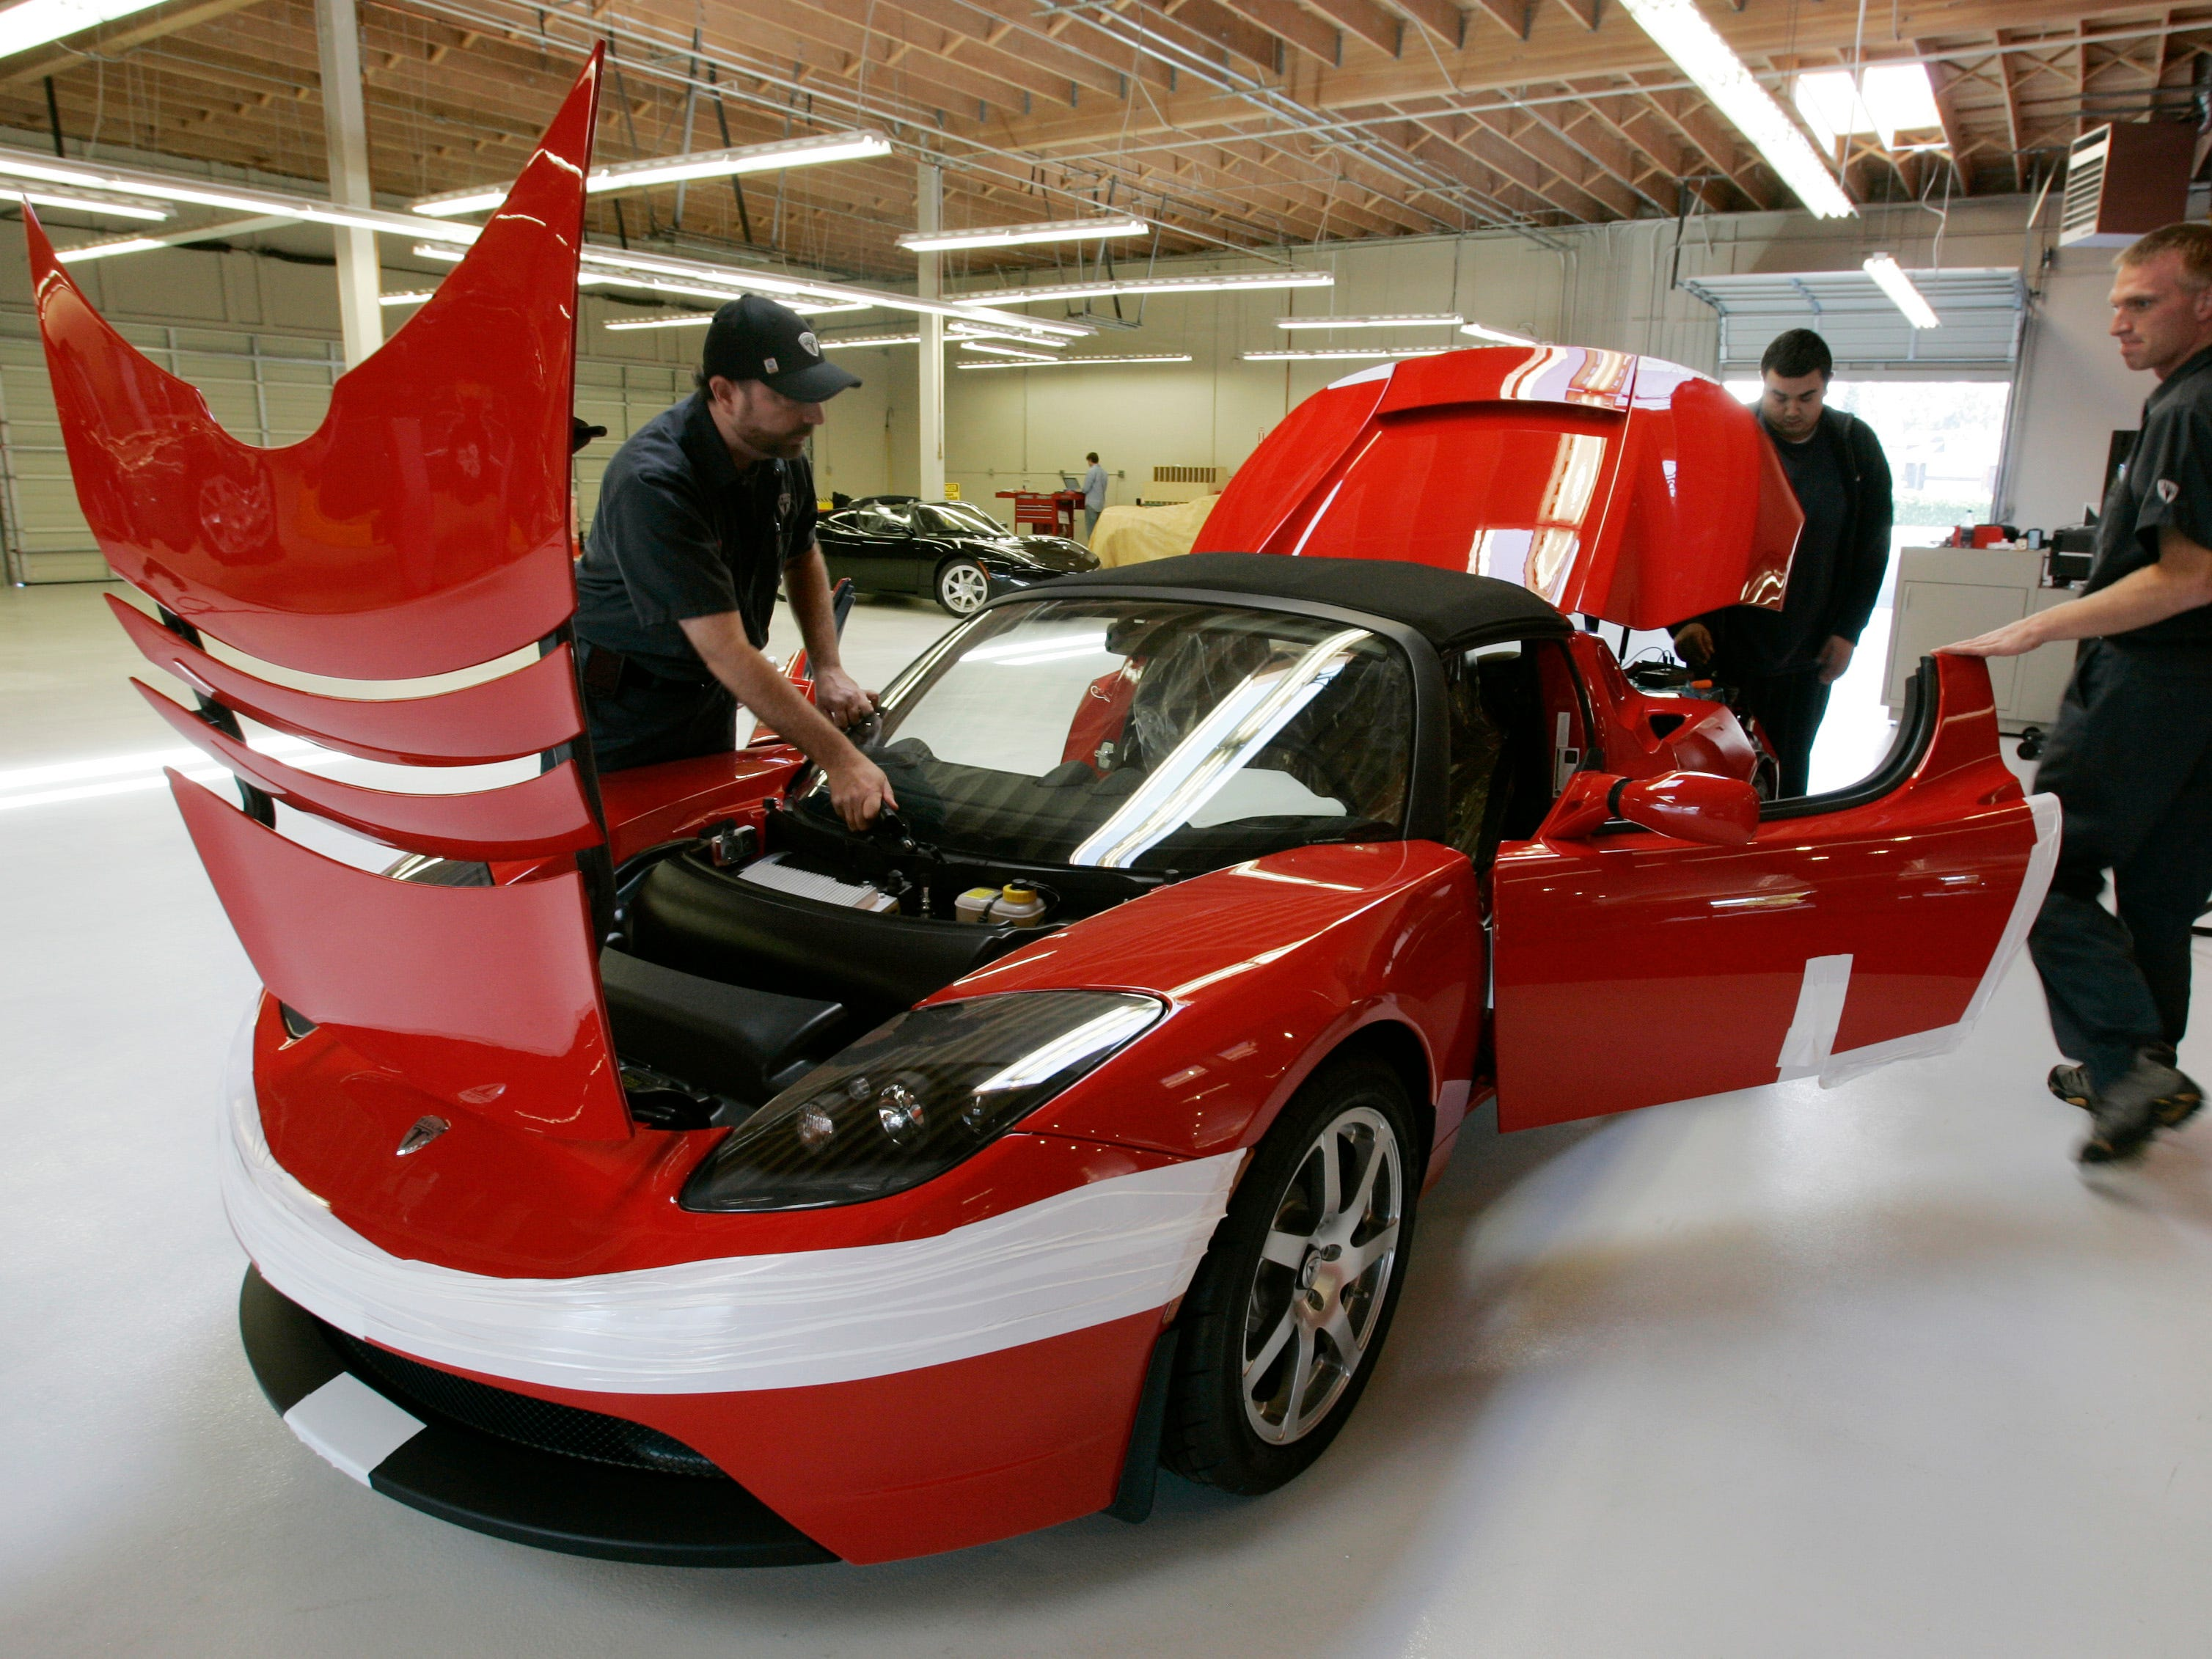 Workers assembly a Tesla Roadster at their showroom in Menlo Park, Calif. Sept. 16, 2008.